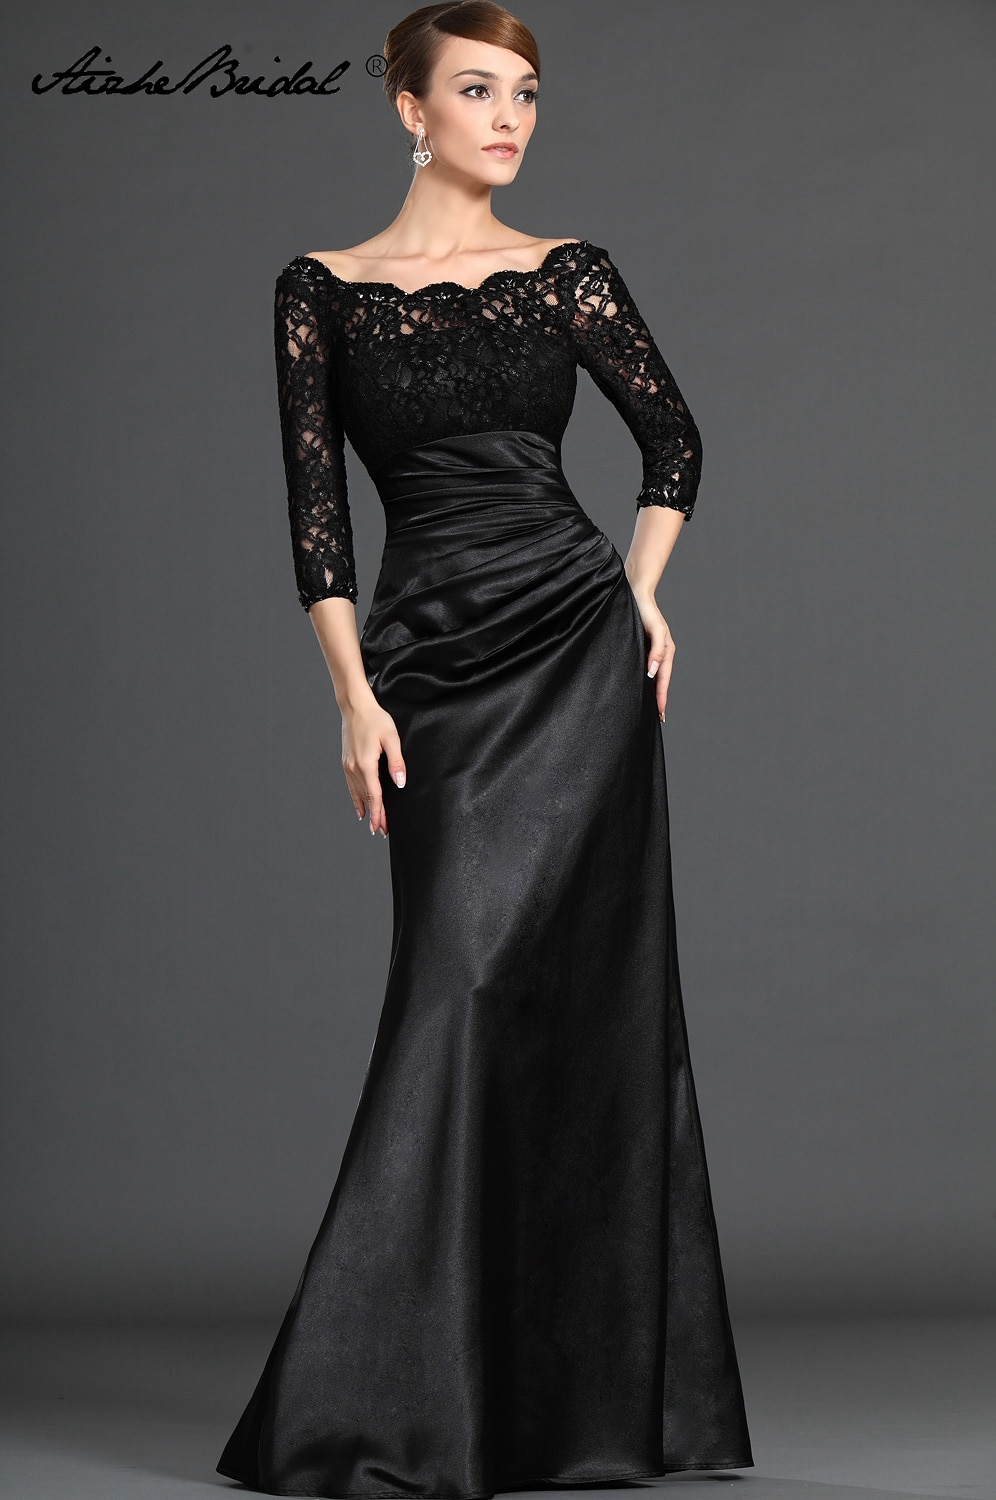 Mother Of The Groom Dresses Gorgeous A Line V Neck 3/4 Sleeve Black Lace of the Bride Dress